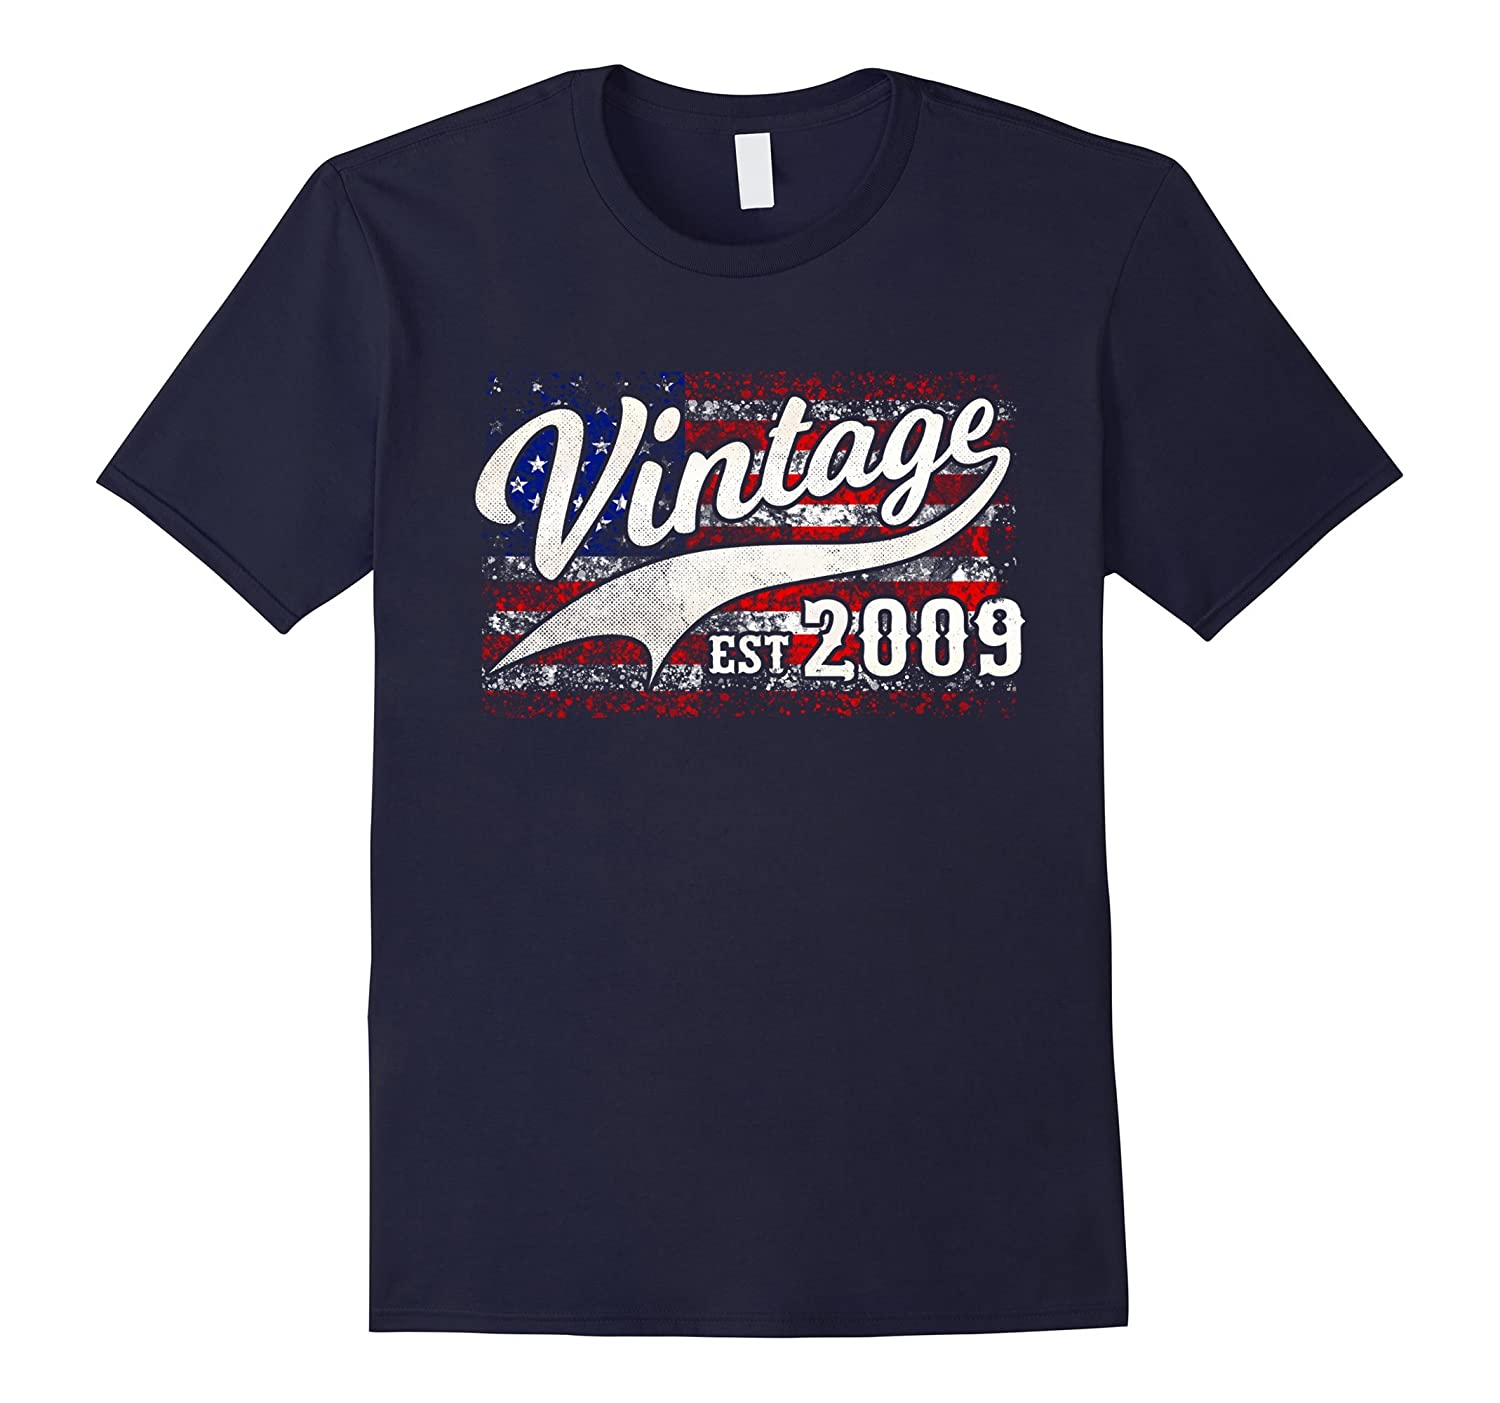 2009 Vintage American Flag 8 th Birthday T-Shirt-ah my shirt one gift